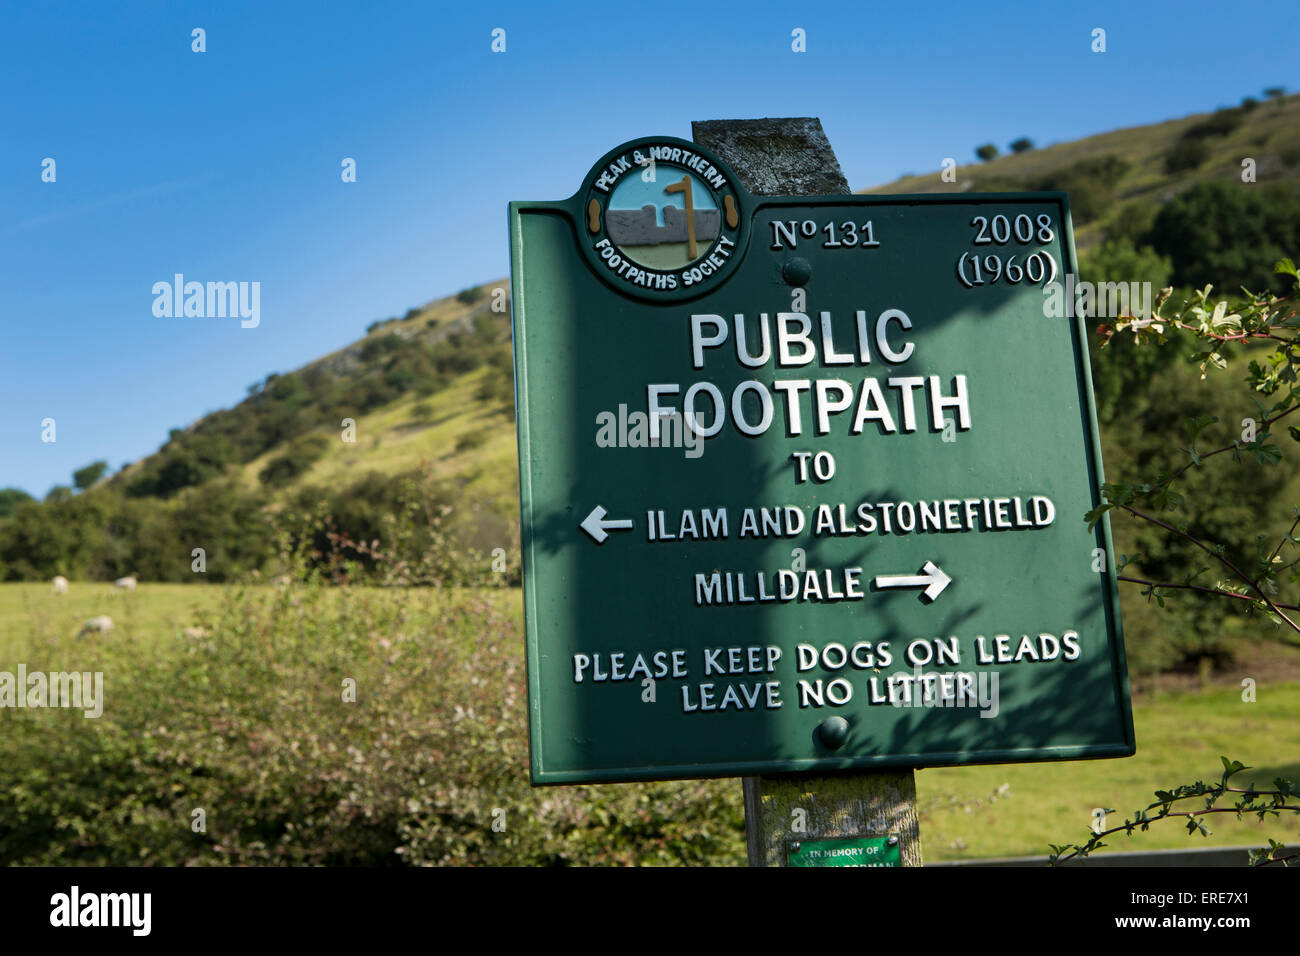 UK, England, Staffordshire, Ilam, Peak and Northern Footpaths Society public path sign through Dovedale to Milldale - Stock Image